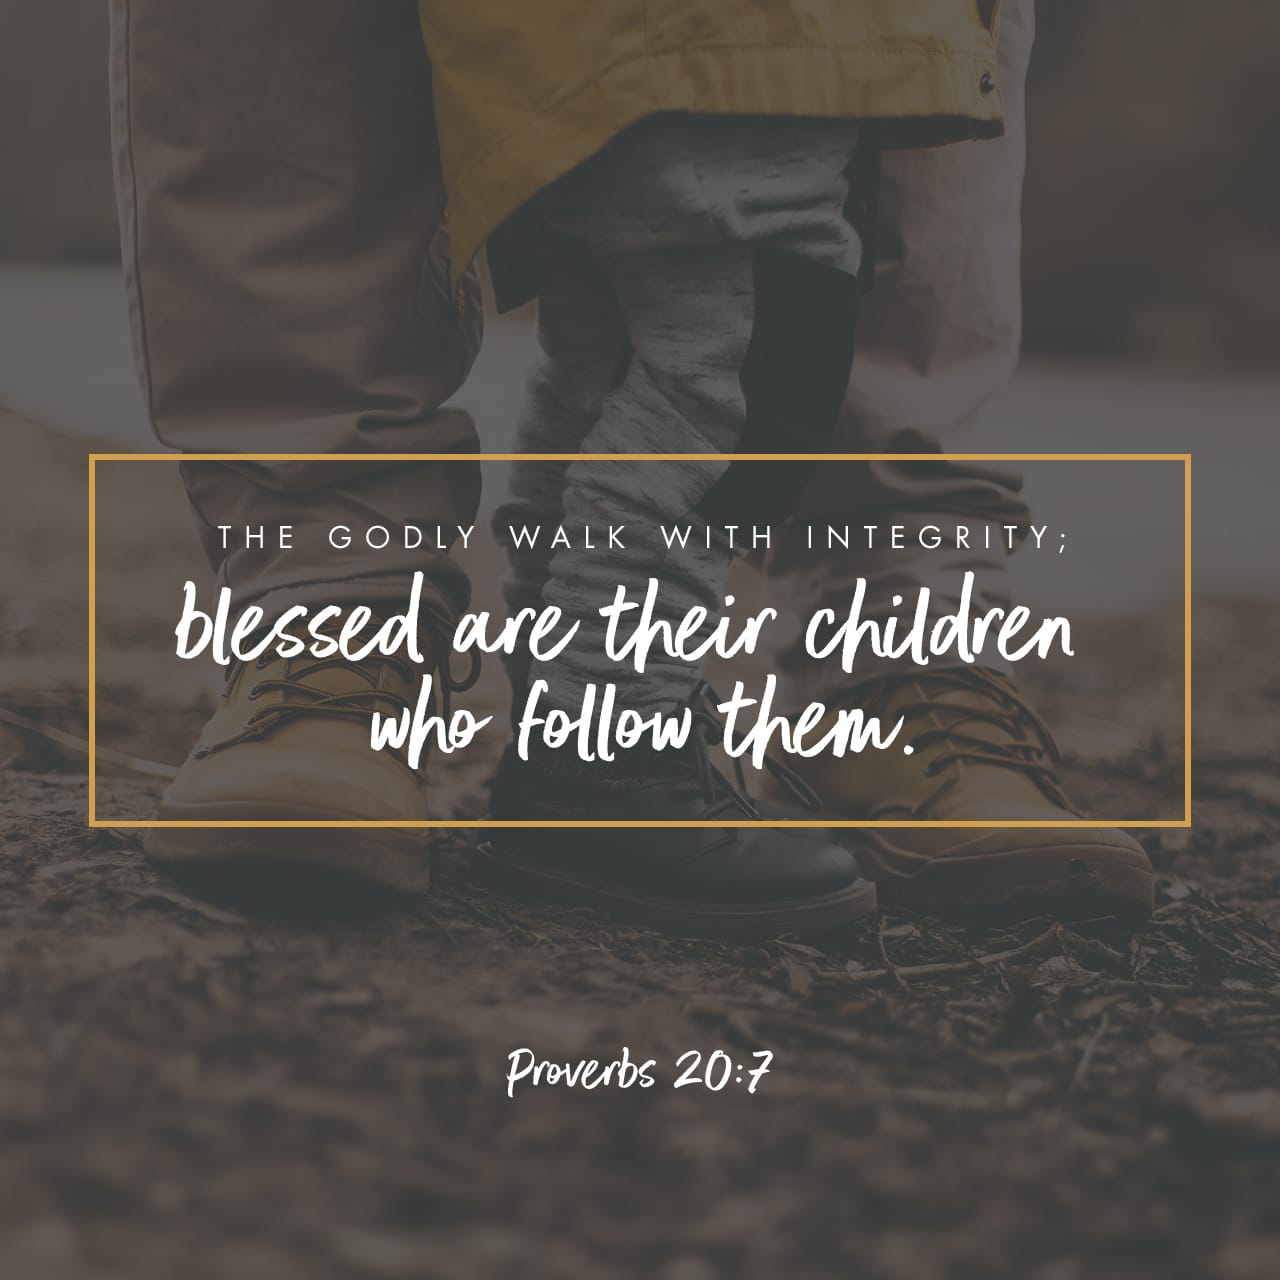 Proverbs 20:7 The just man walketh in his integrity: his children are blessed after him. | King James Version (KJV) | Baixar o App da Bíblia agora